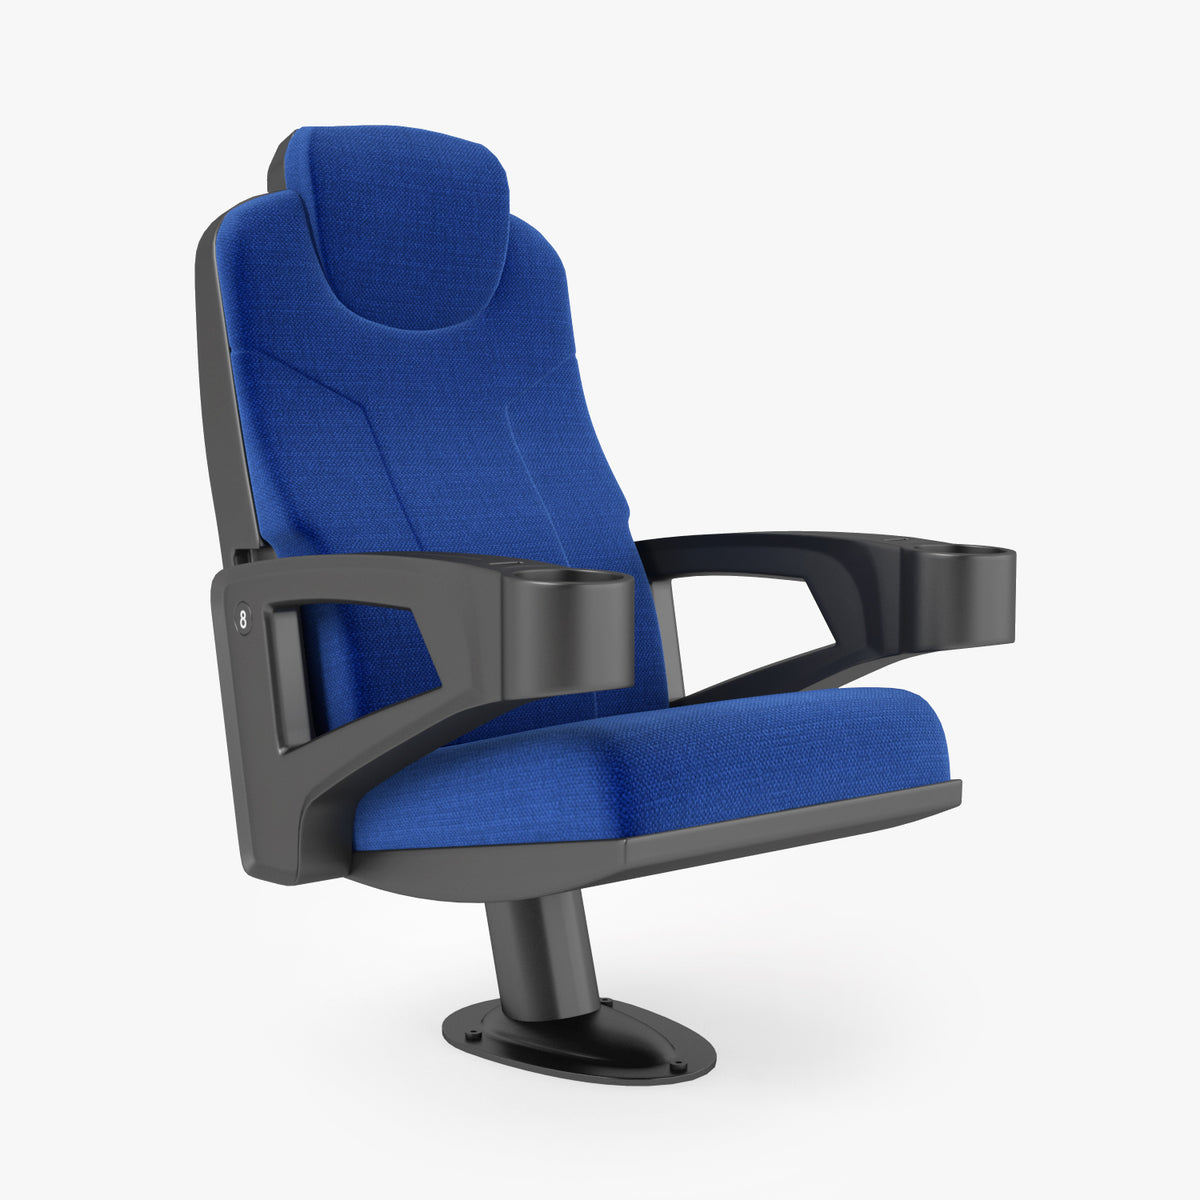 Figueras 9114 Megaseat RC Cinema Seats Chair